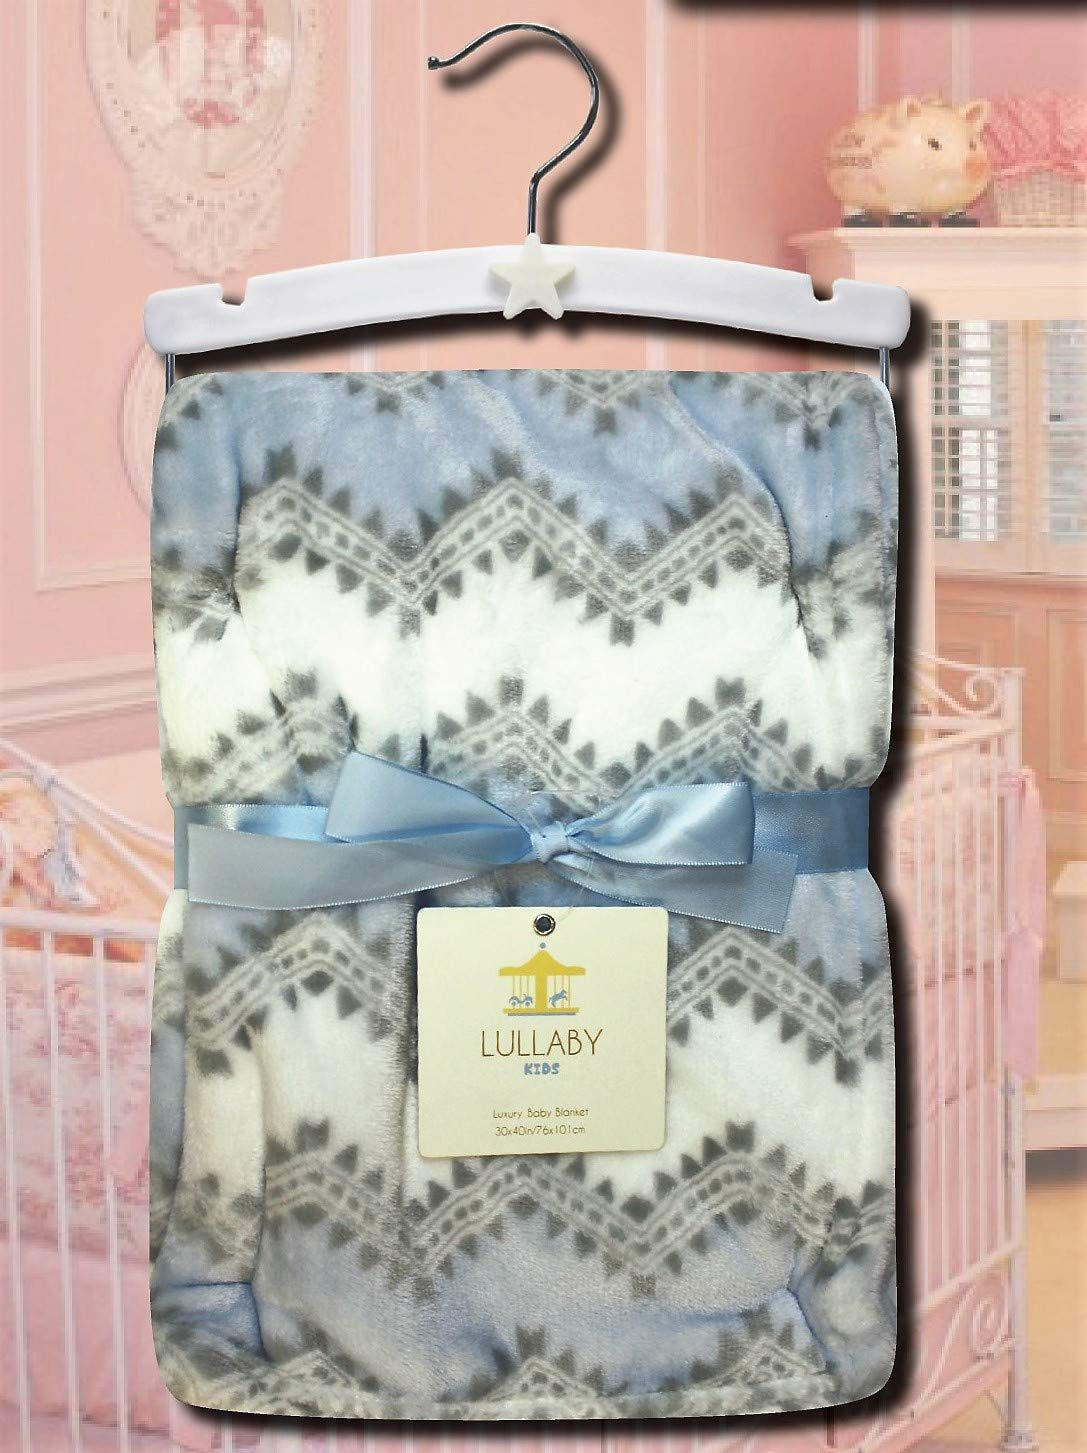 Northpoint Lullaby Kids Aztek Print Velvet Luxury Baby Blanket 30x40 Powder